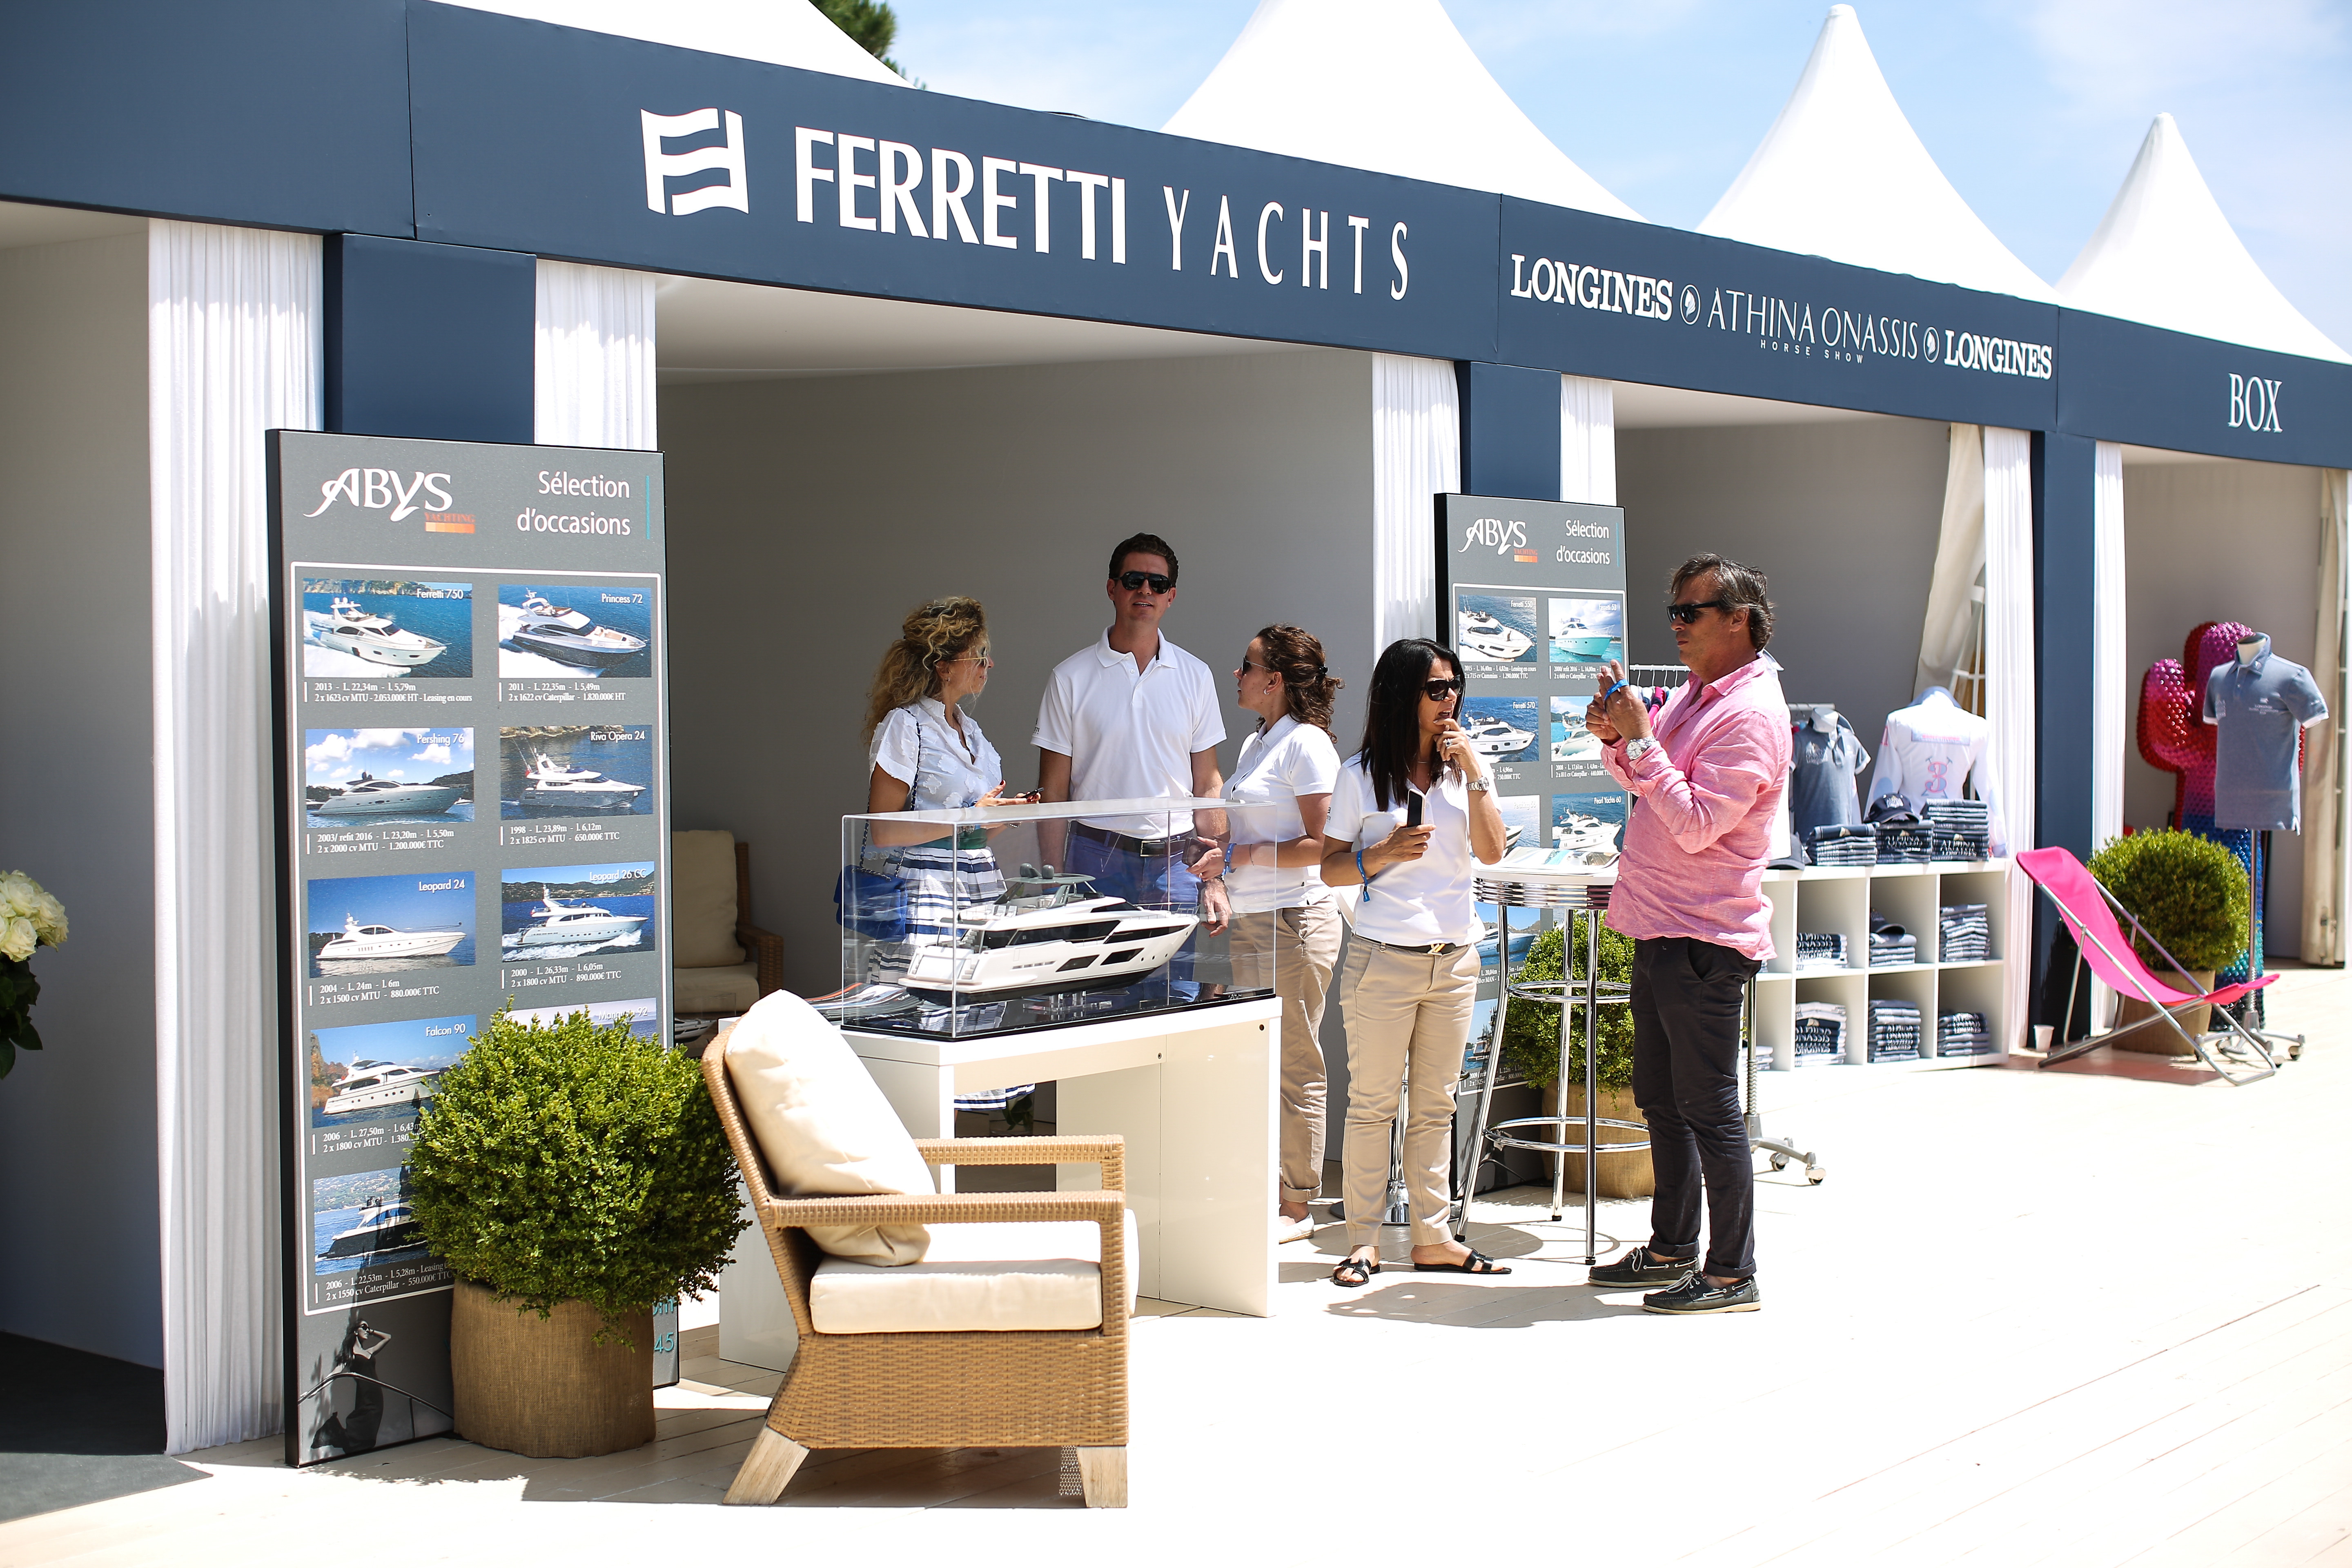 Abys Yachting, partenaire officiel du Longines Athina Onassis Horse Show